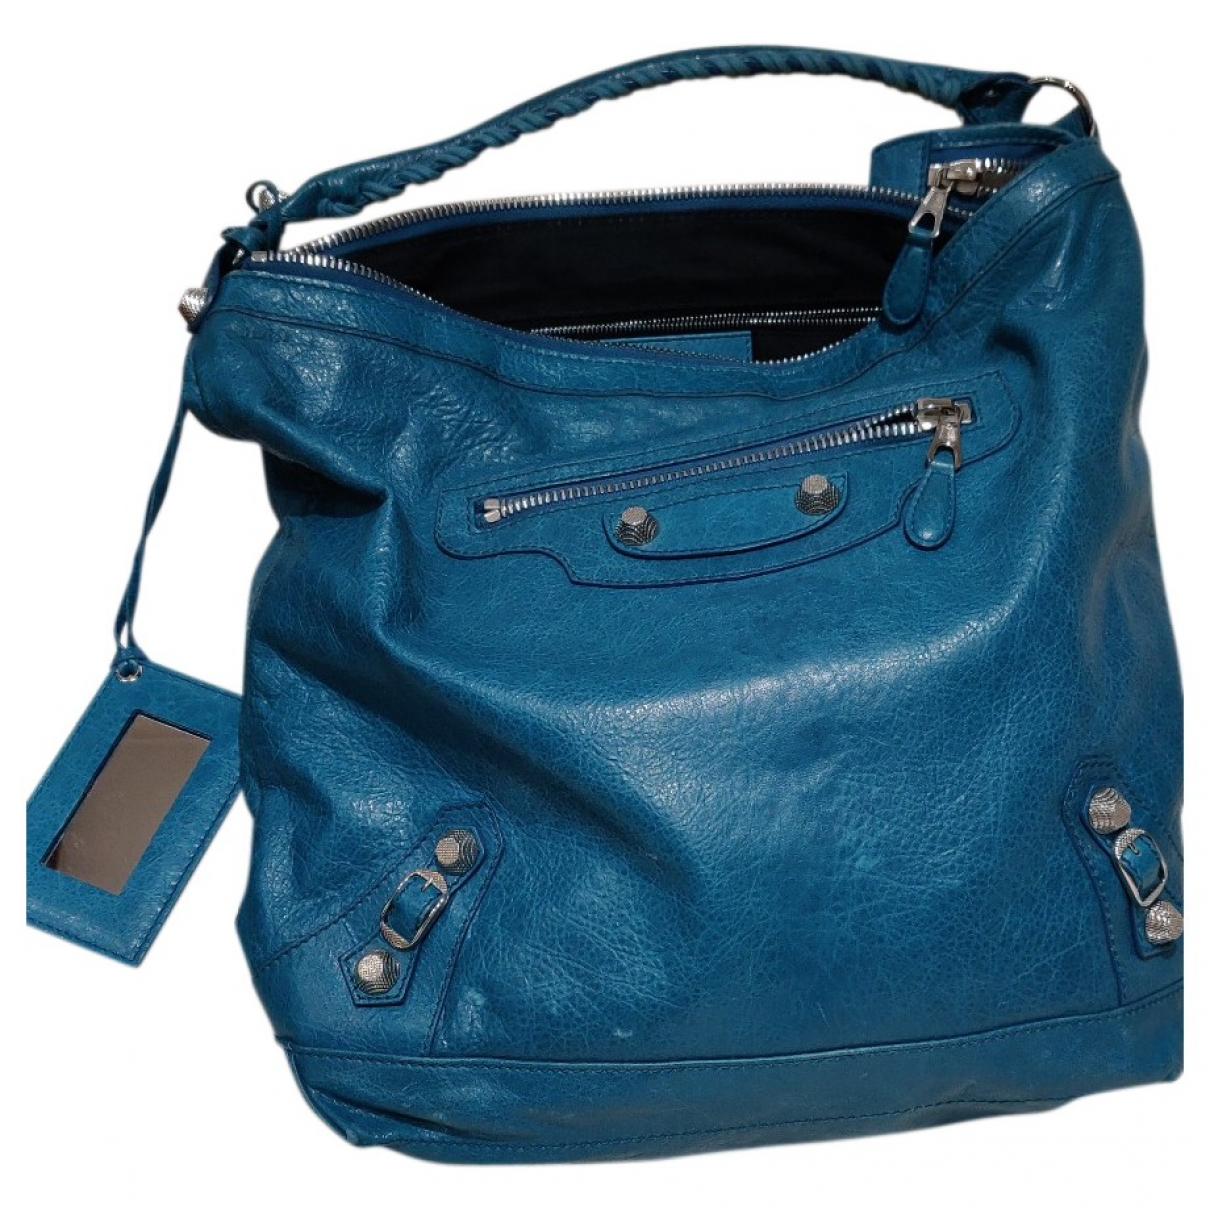 Balenciaga Day  Turquoise Leather handbag for Women \N